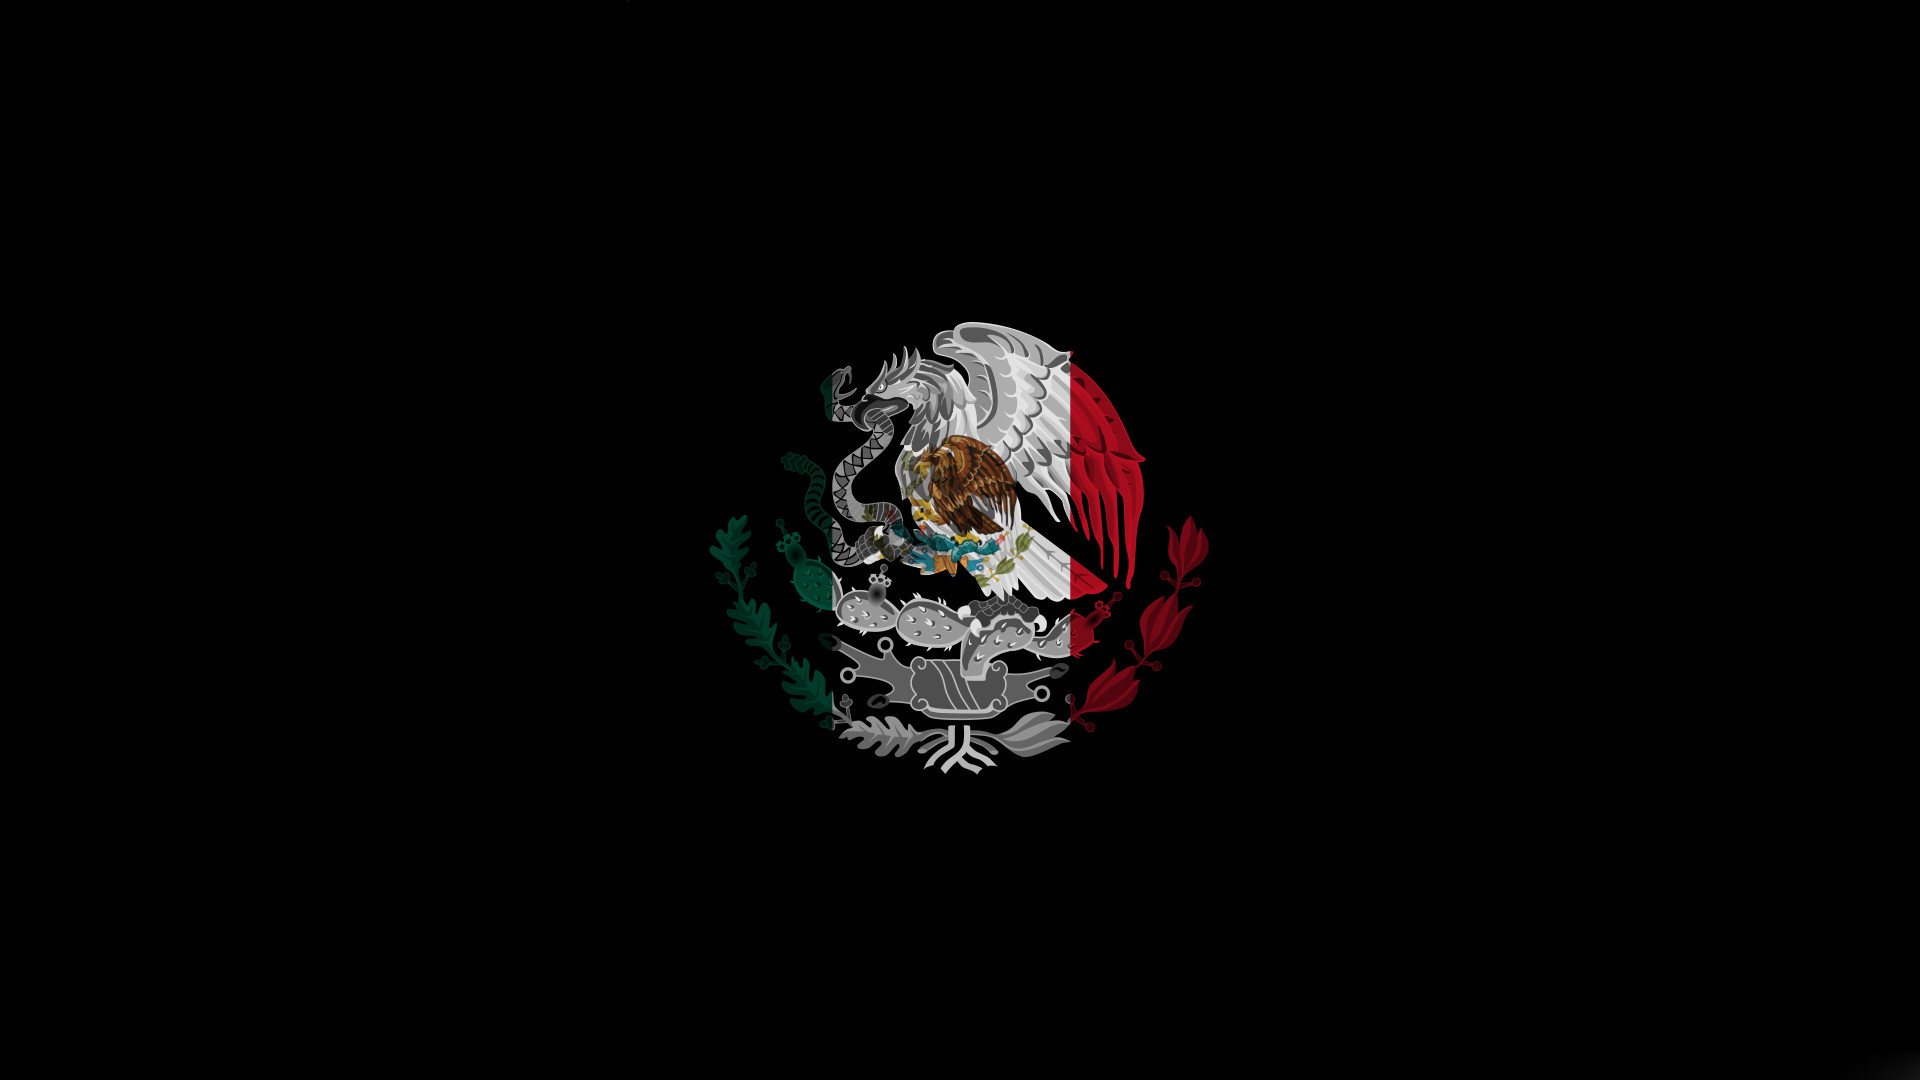 mexico soccer logo wallpaper (52+ images)